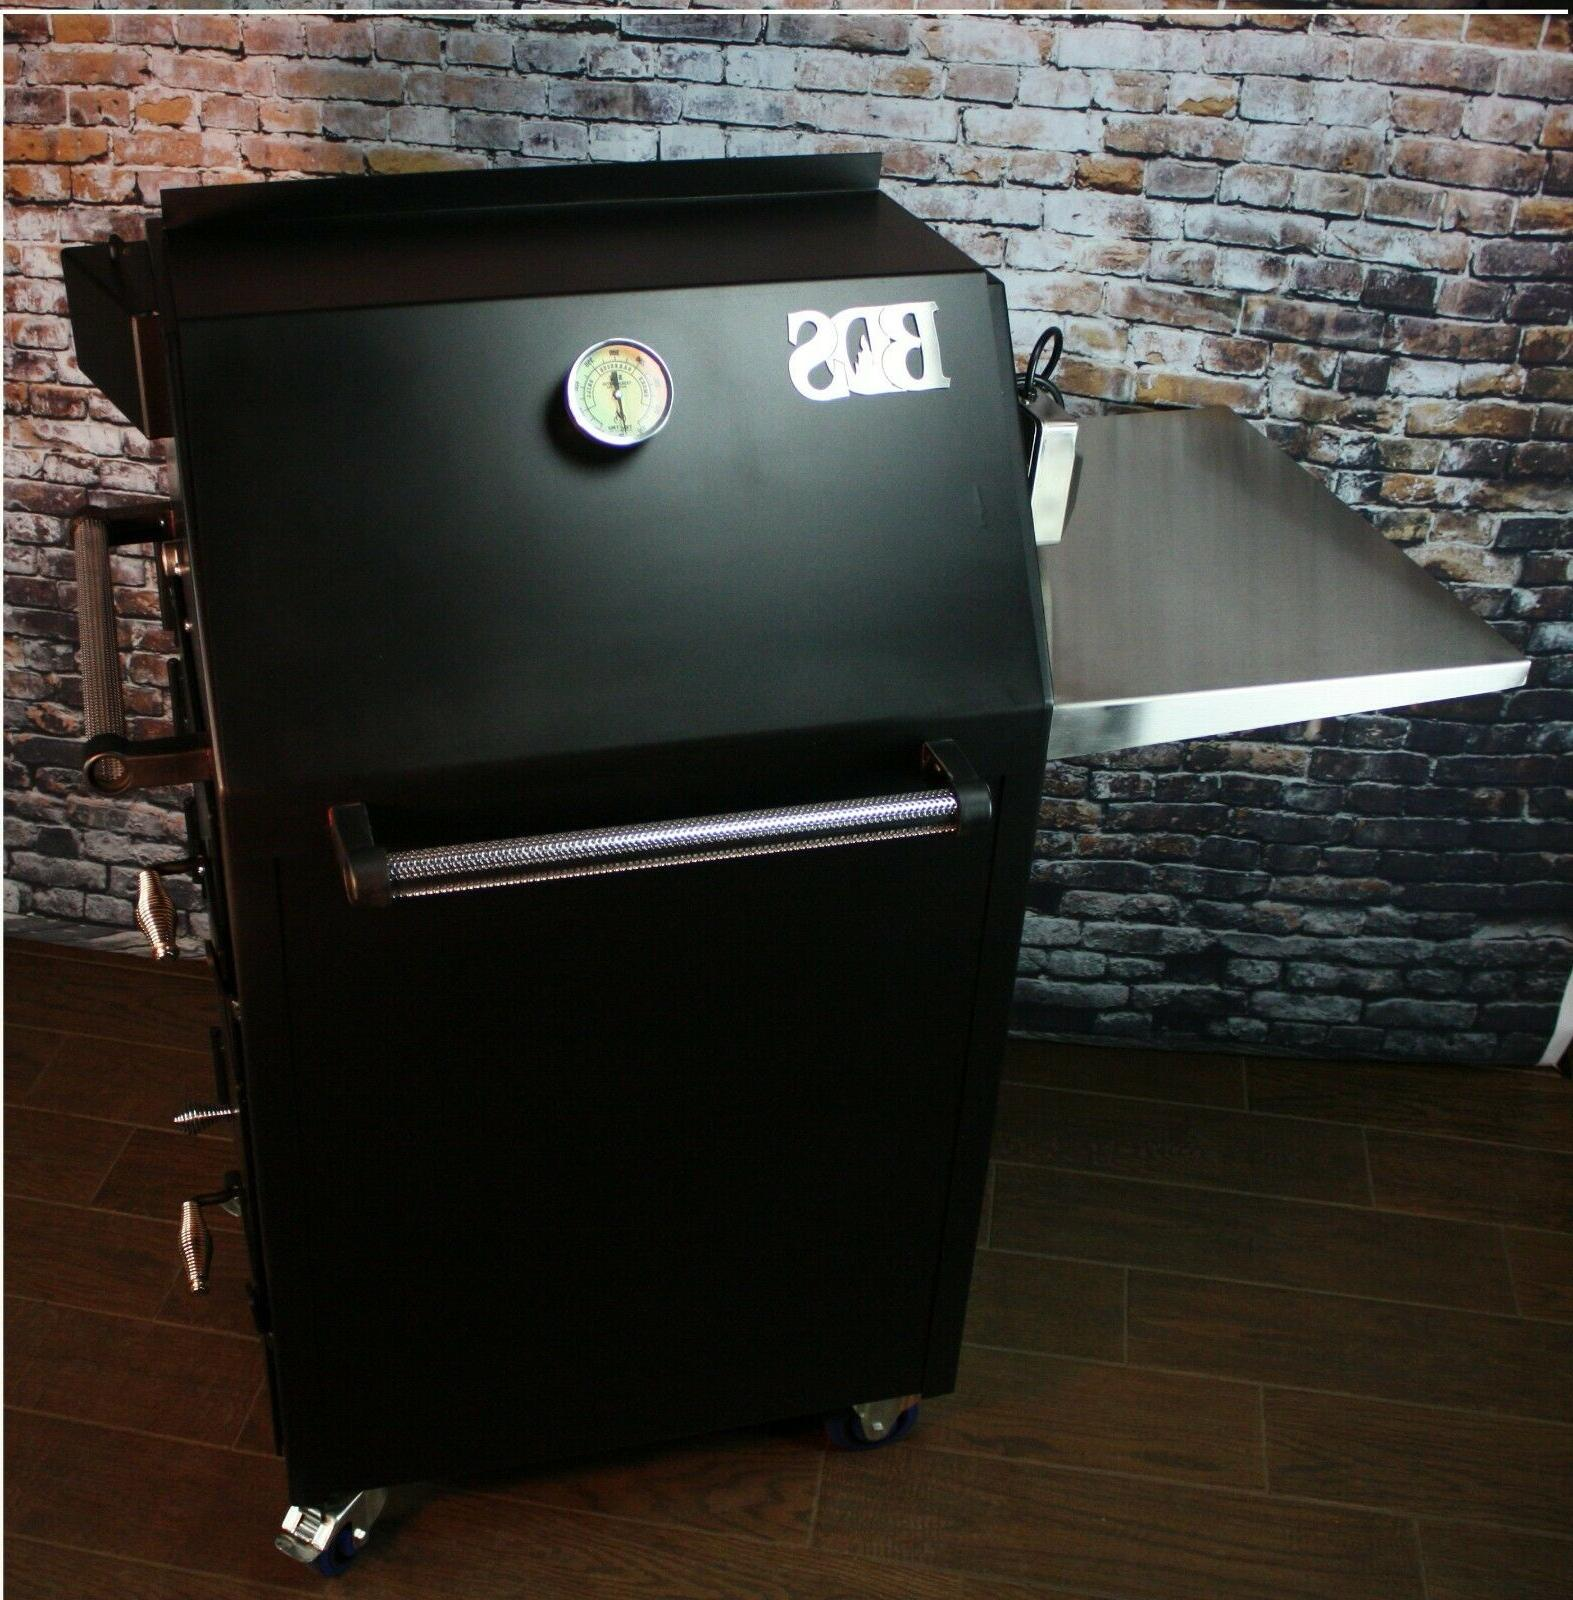 bbq smoker big daddy smoker rotisserie grill